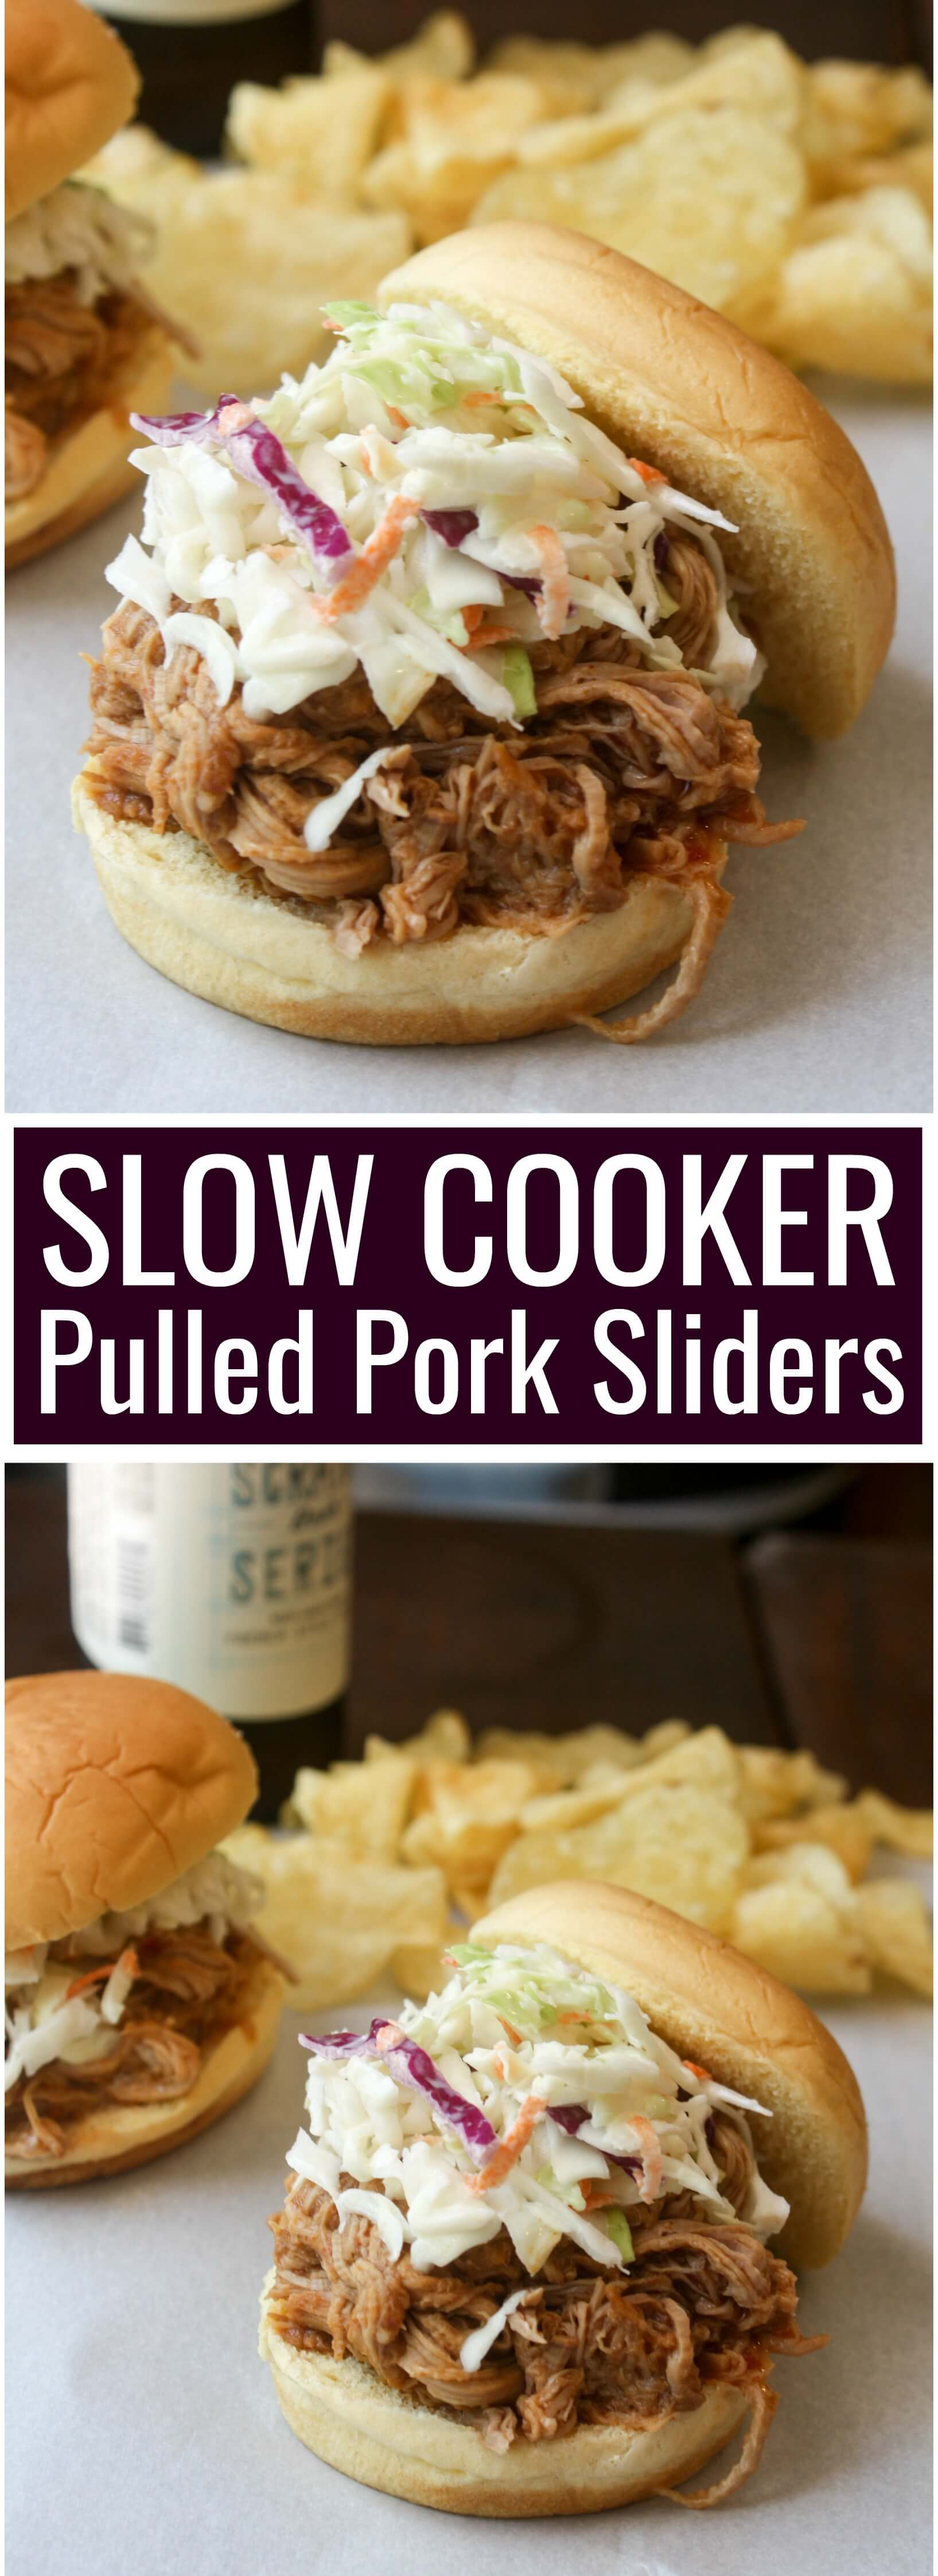 Slow Cooker BBQ Pulled Pork Sandwiches slow cooked for 4 hours in your favorite BBQ sauce and piled high with sweet tangy coleslaw.